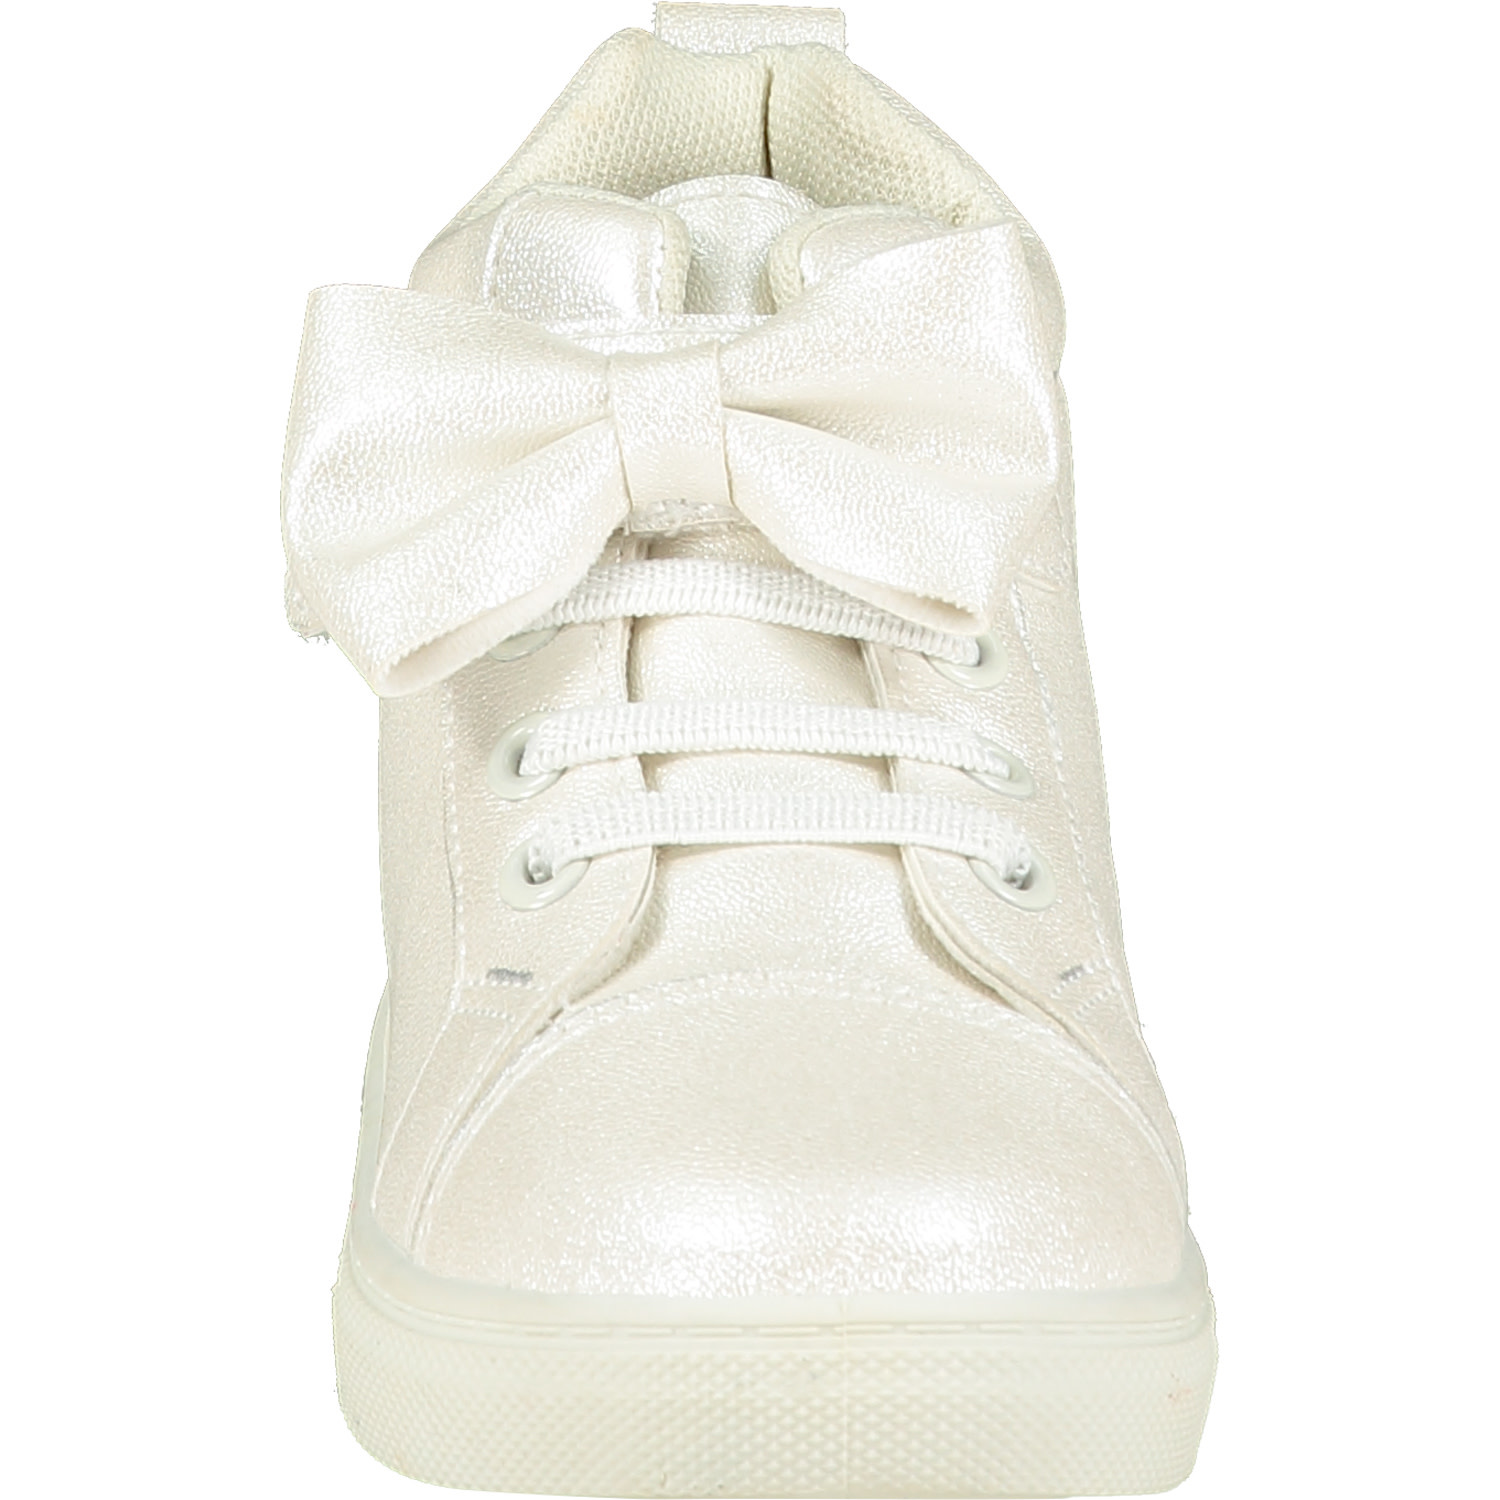 A Dee ADee Bowtique Snow White Bow High Top Trainers